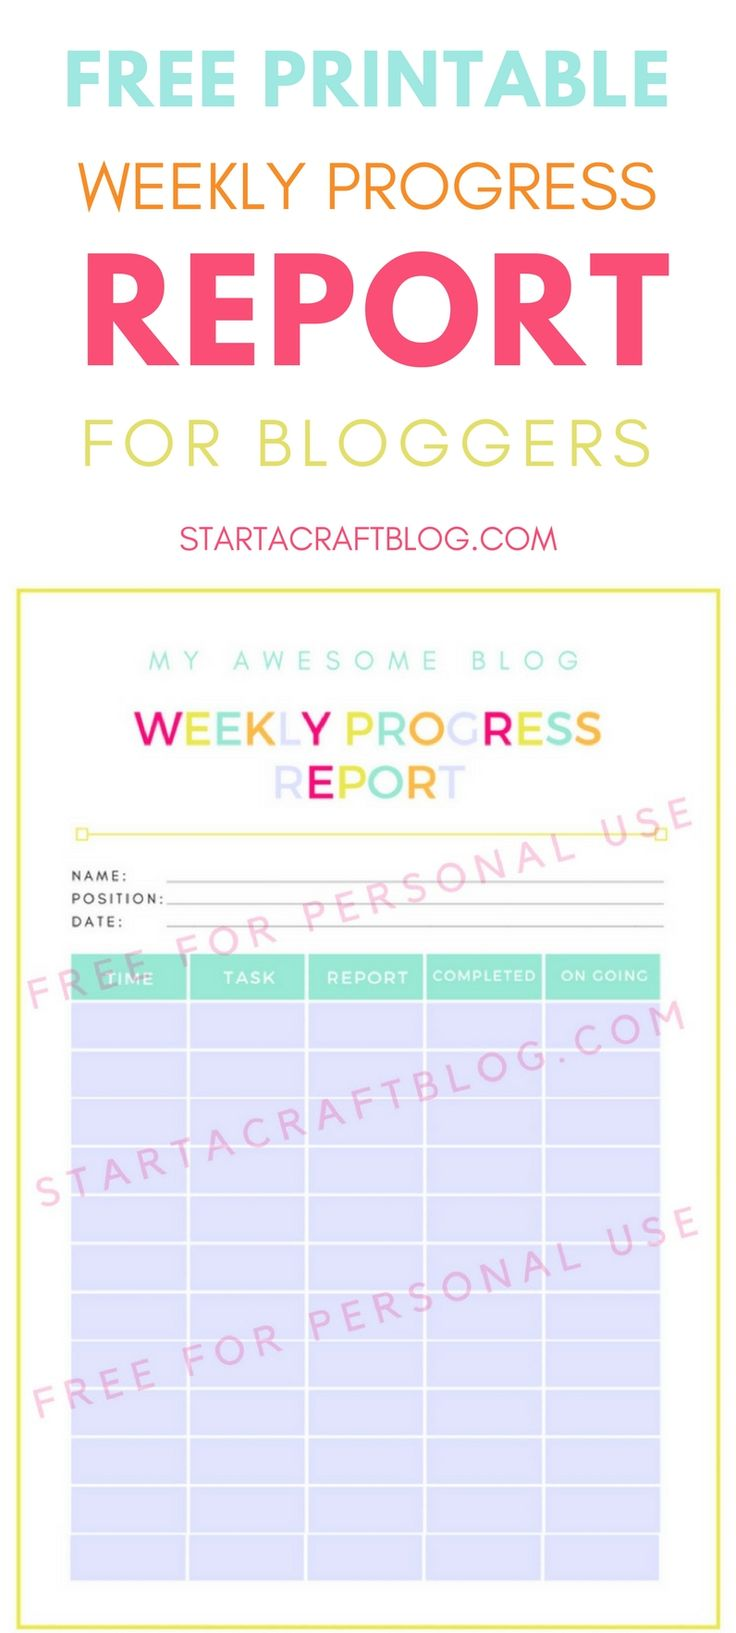 Download the free printable weekly progress report for blogging tasks. Get access to the blog vault full of free training; a free pinterest free webinar, affiliate trackers, mini guides & all the resources you need to grow as a blogger, get more traffic & monetise.